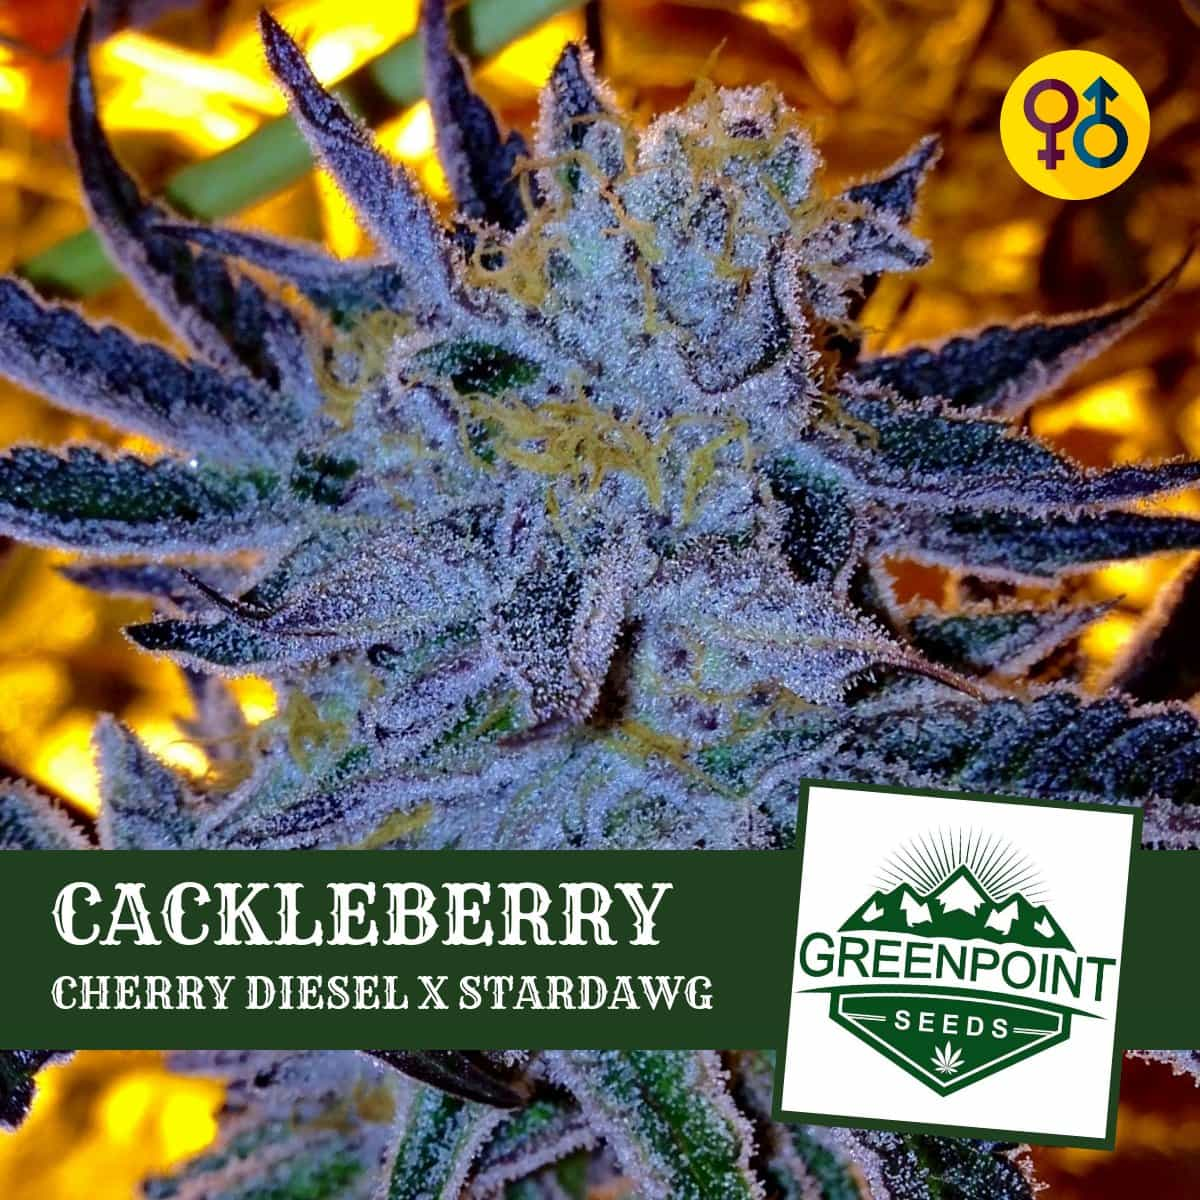 Cackleberry - Cherry Diesel X Stardawg   Greenpoint Seeds